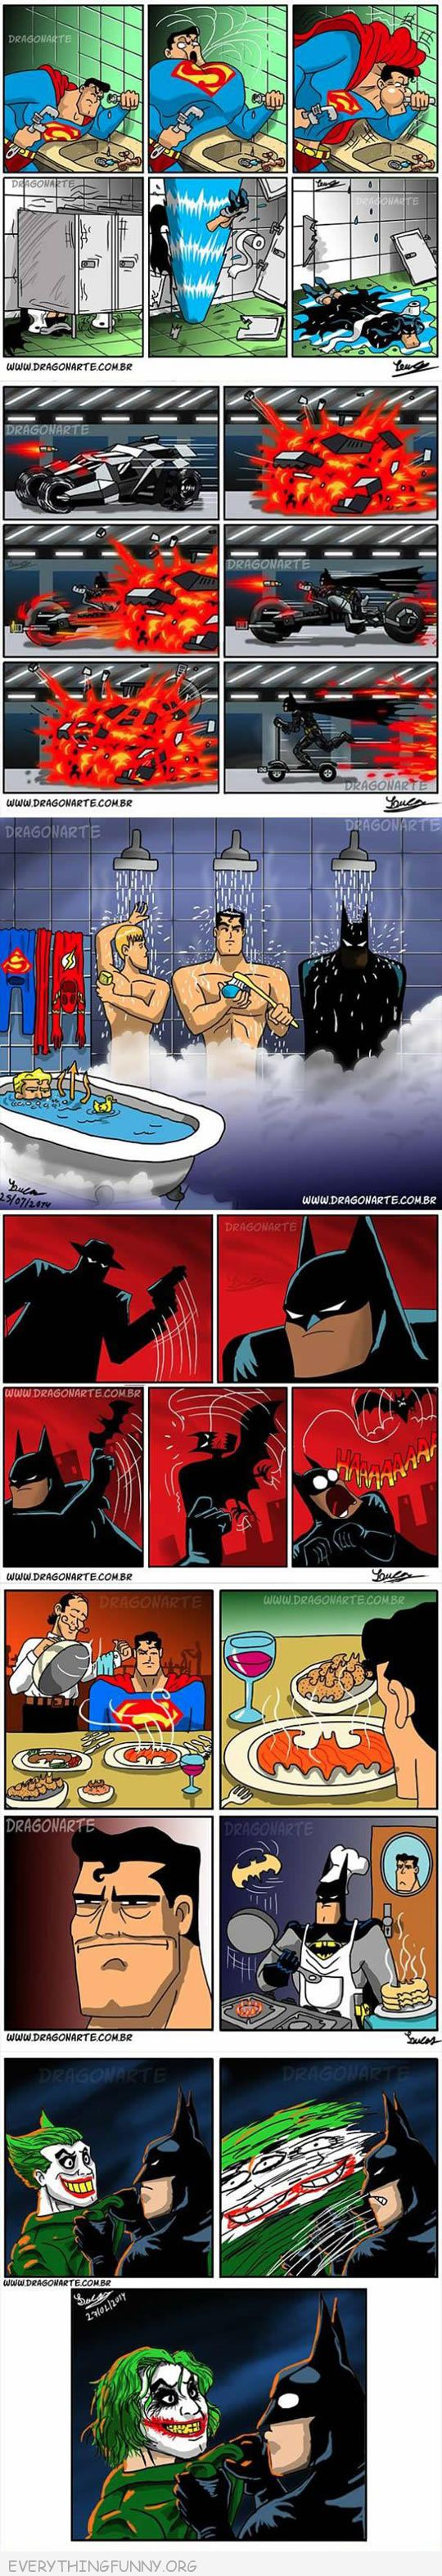 funny batman superman comics cartoon